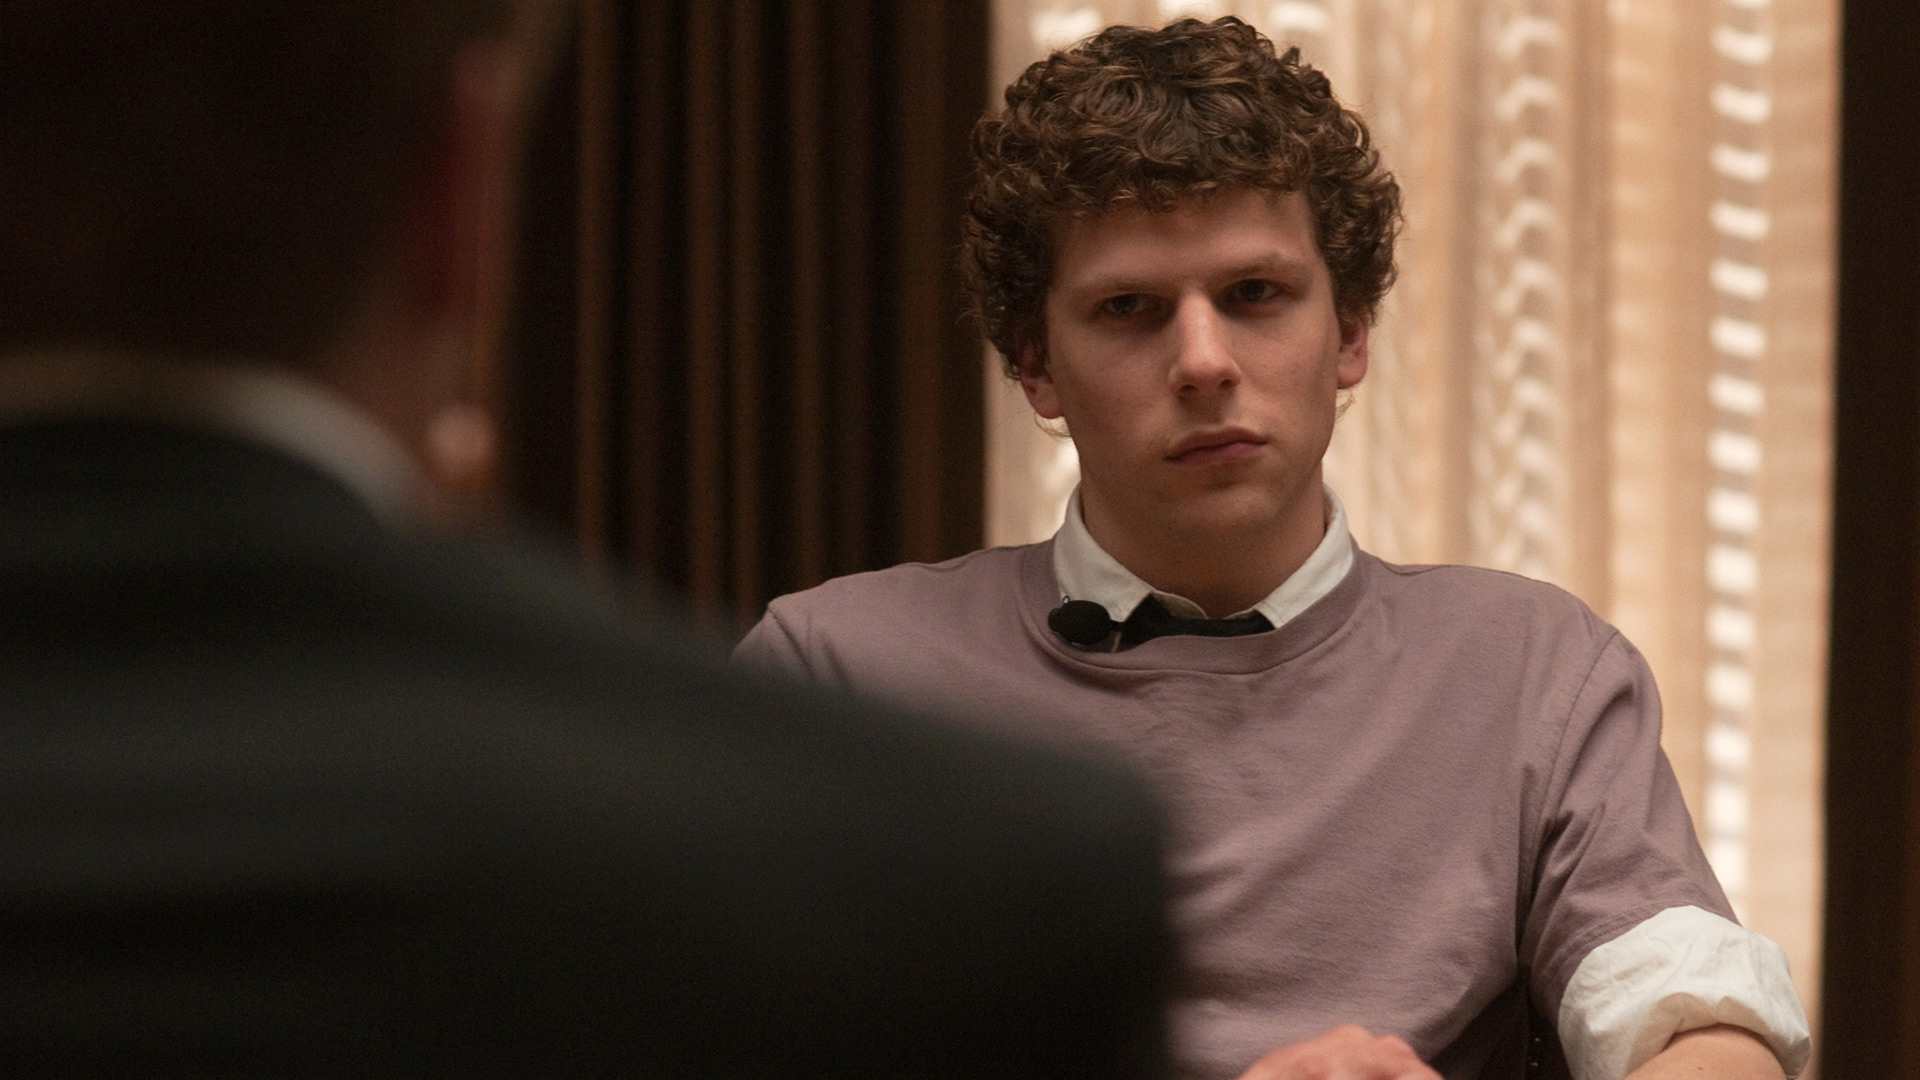 Watch The Social Network Prime Video